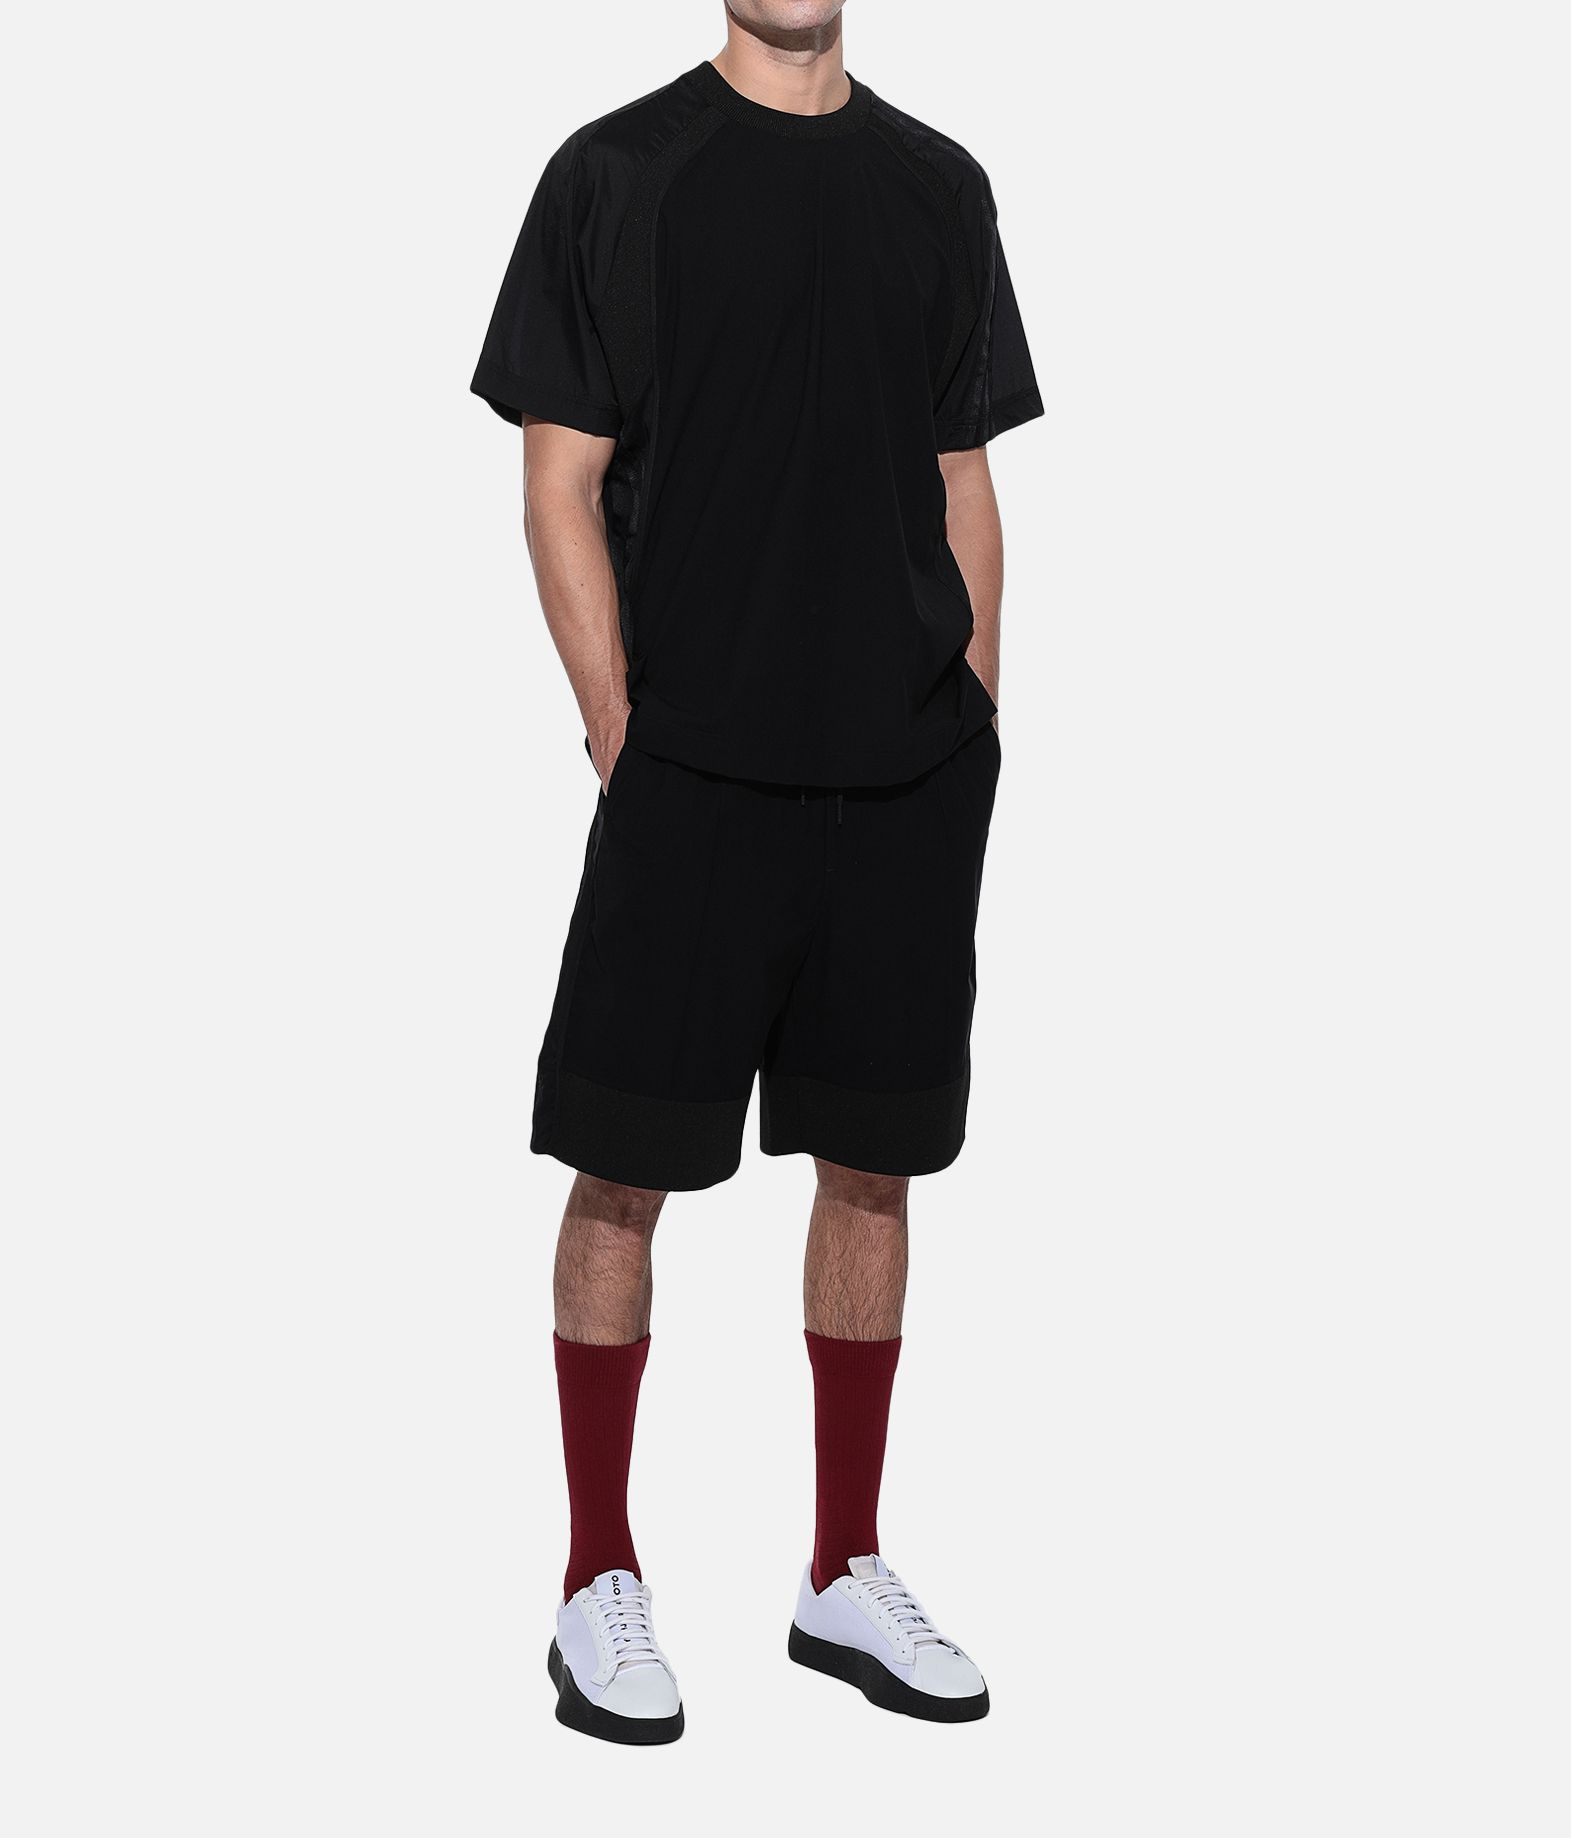 Y-3 Y-3 3-Stripes Material Mix Tee Short sleeve t-shirt Man a